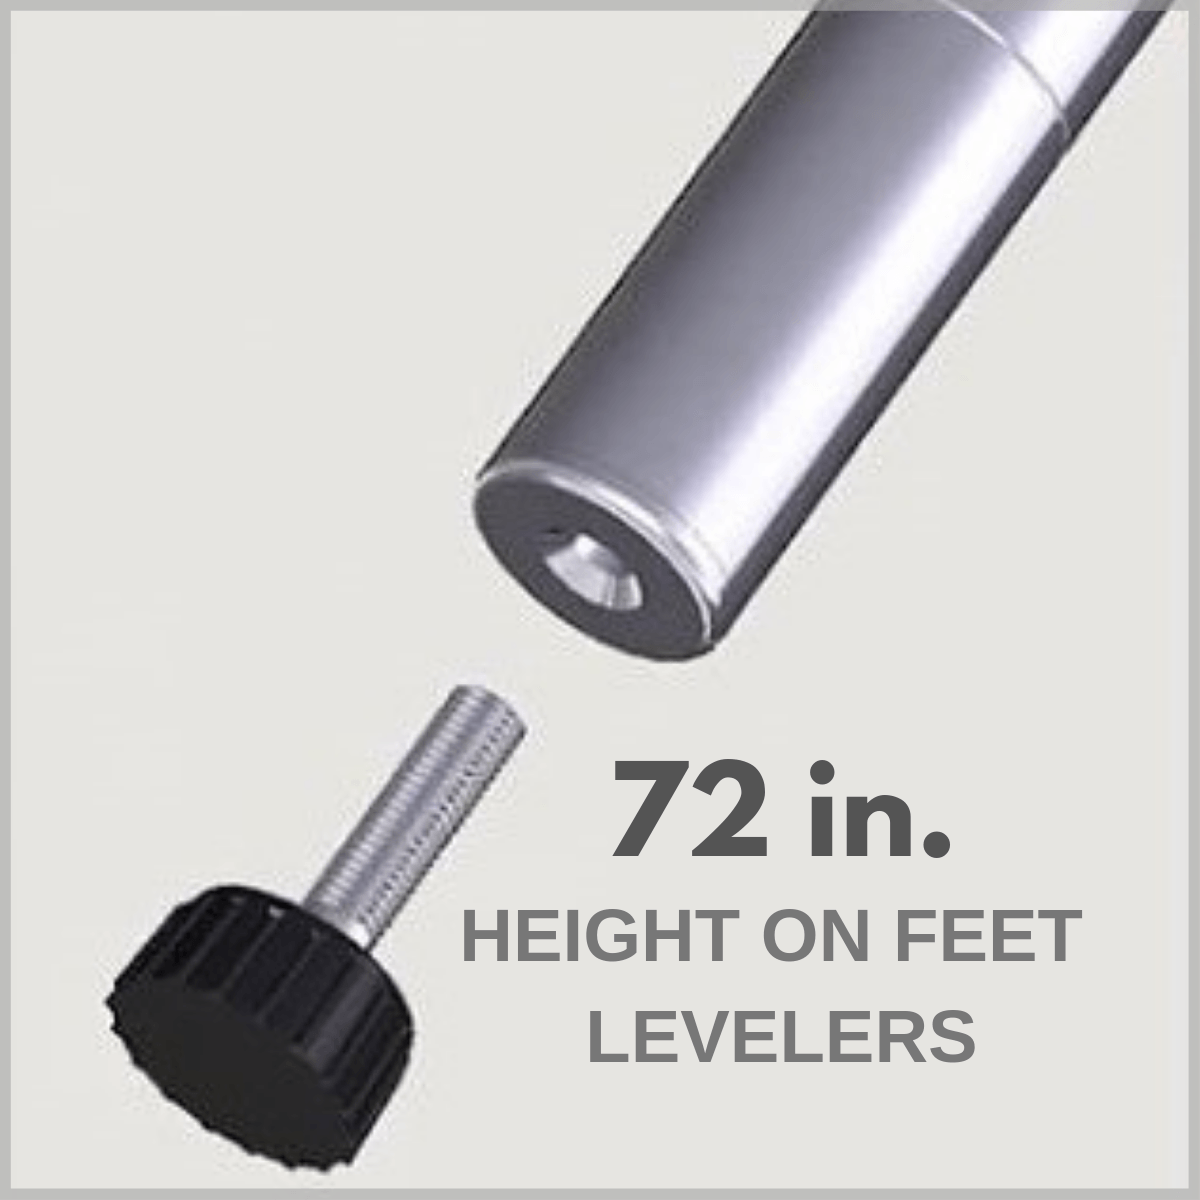 72 in. height on feet levelers